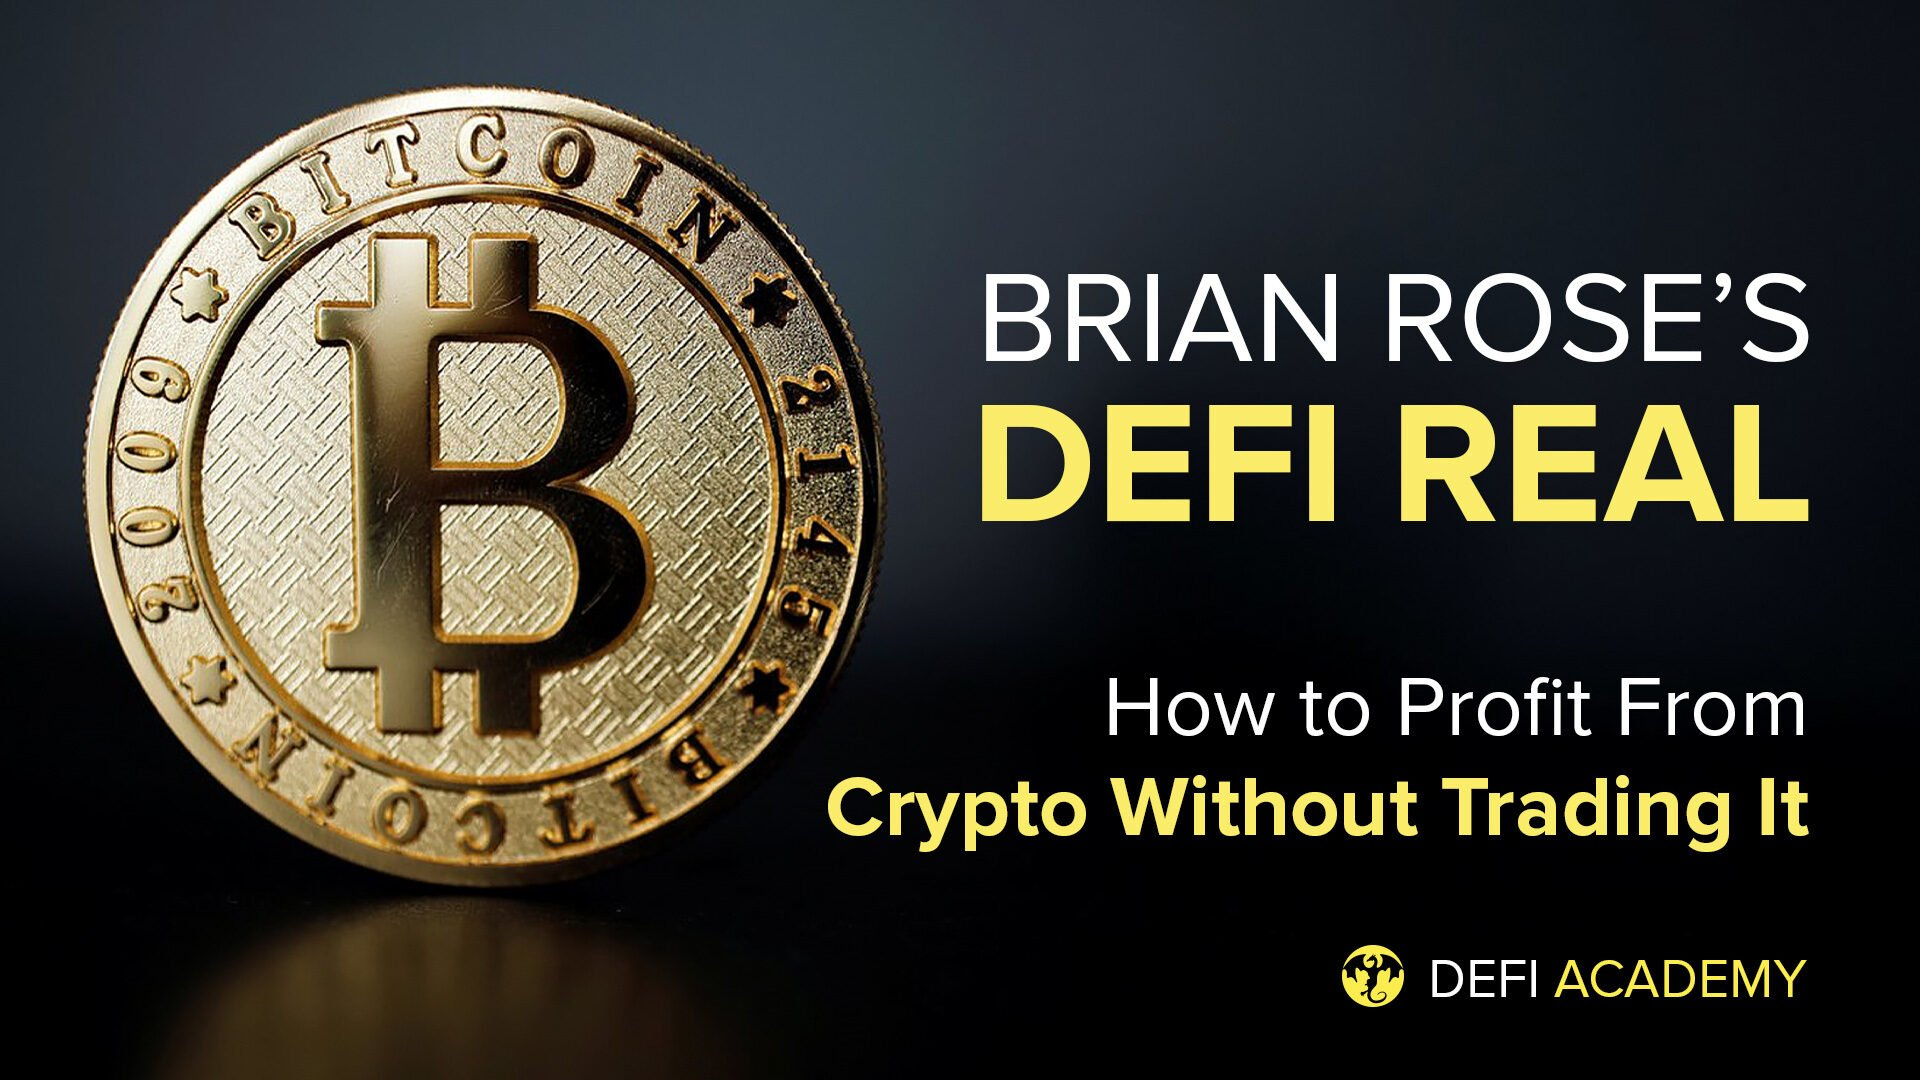 Yield Farming, Liquidity Pools, & Staking: How To Profit From Crypto Without Trading It